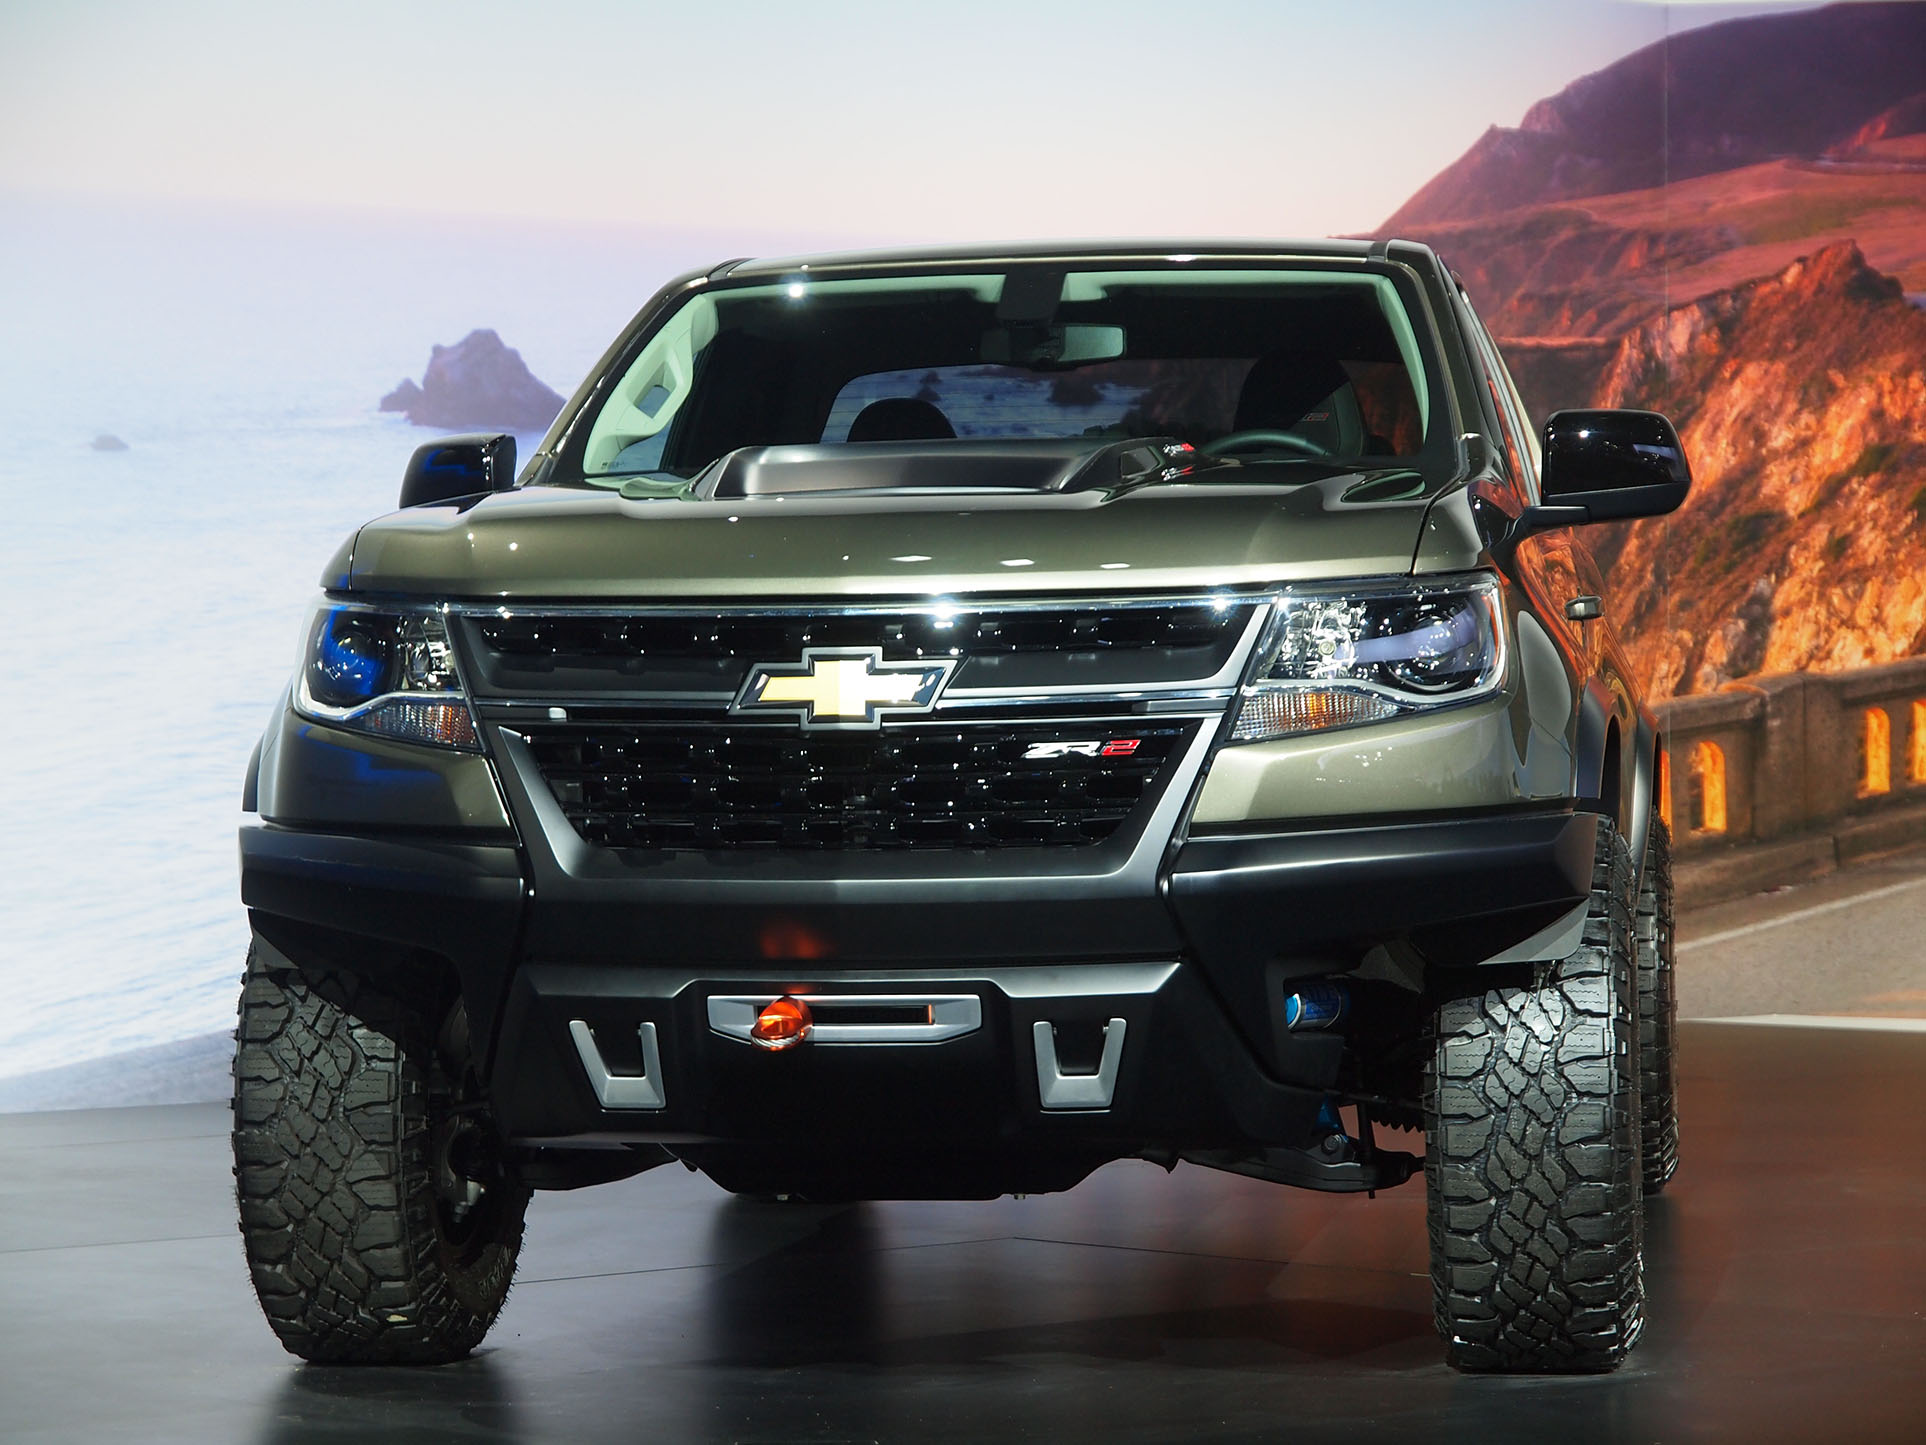 2017 chevrolet colorado duramax mpg upcoming chevrolet. Black Bedroom Furniture Sets. Home Design Ideas